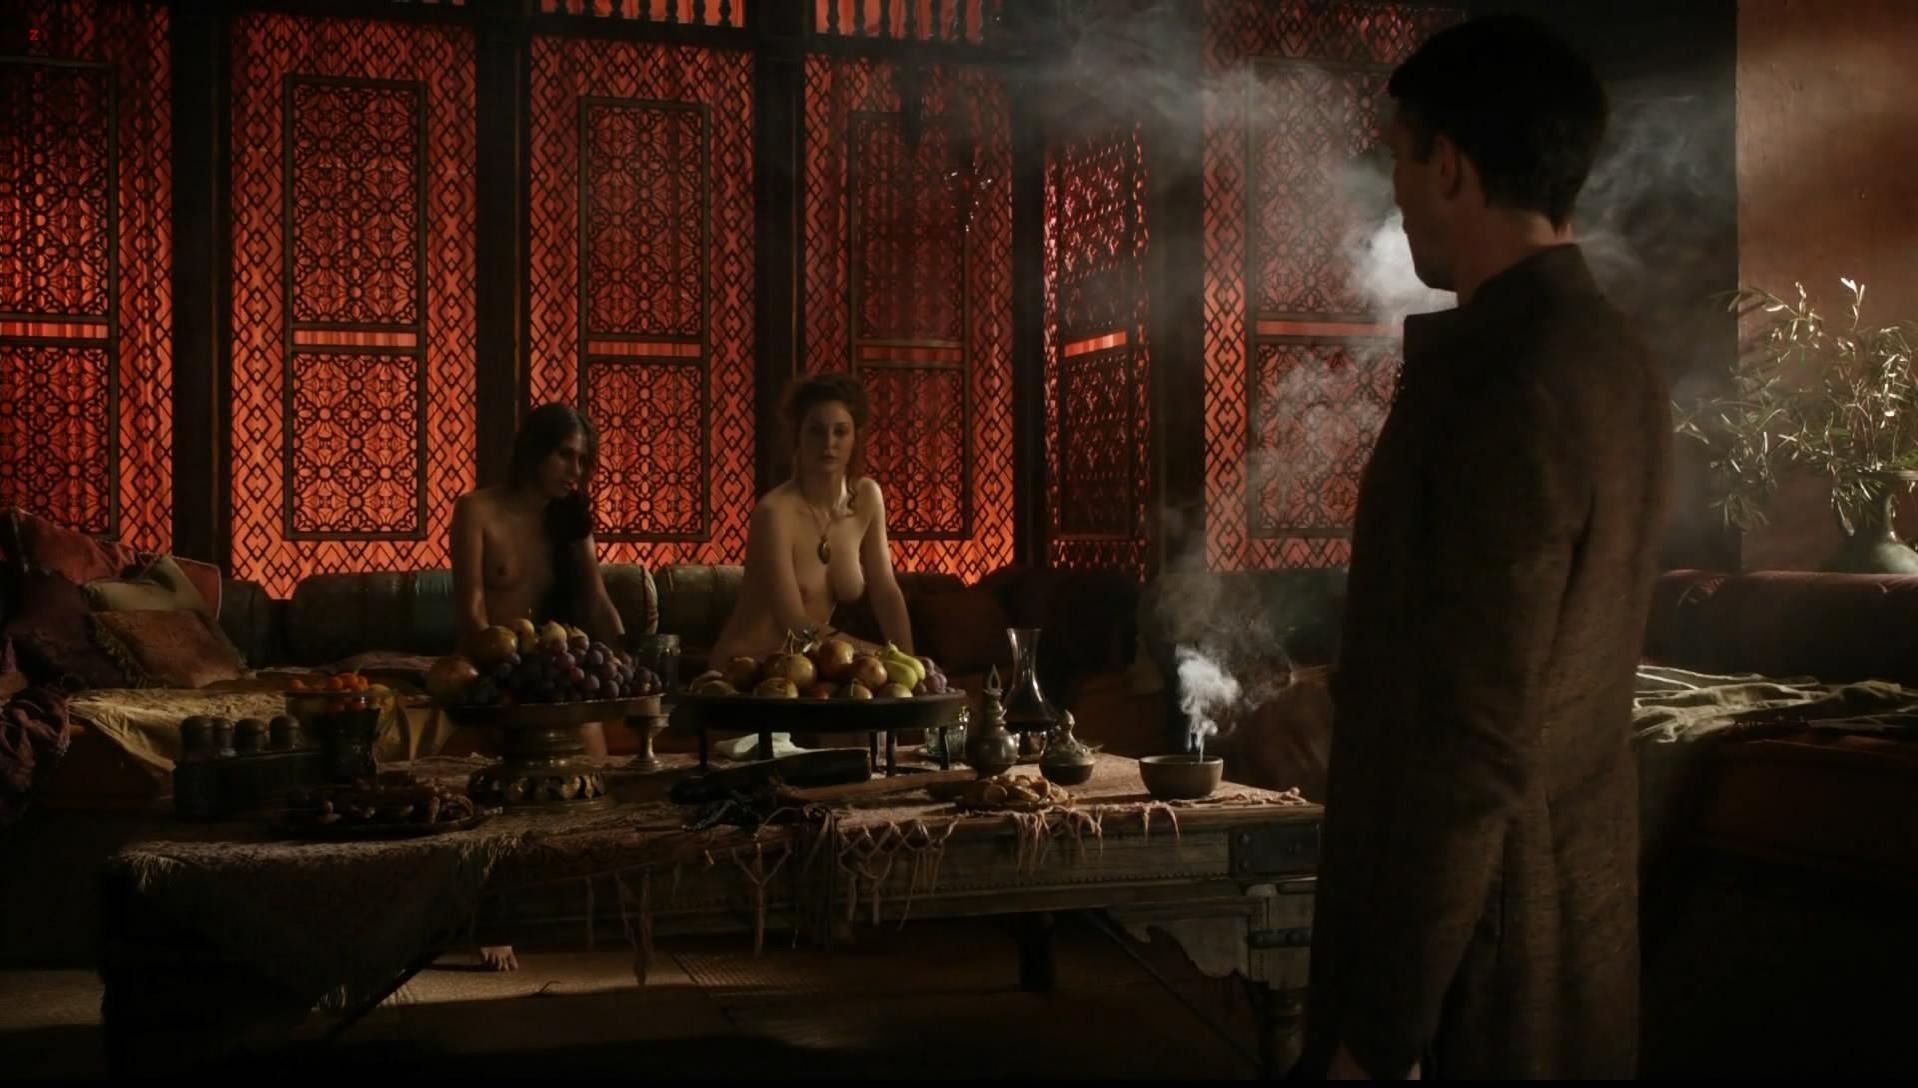 Esme Bianco nude, Sahara Knite nude - Game of Thrones s01e07 (2011)